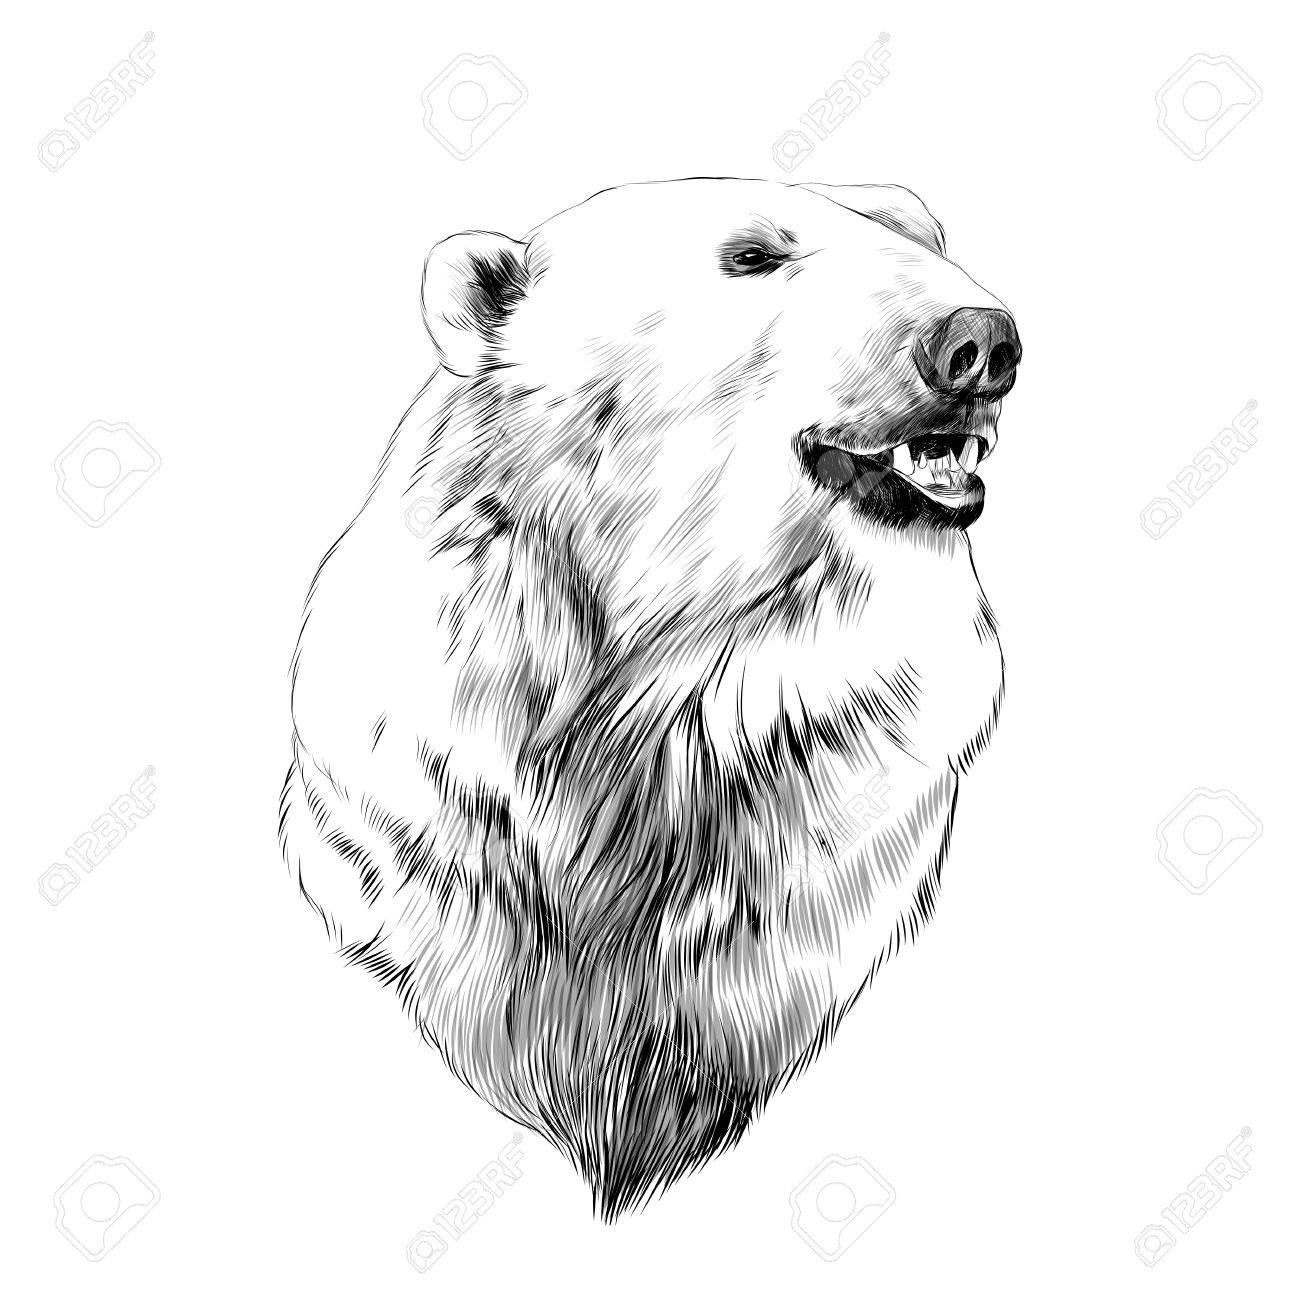 the head of the polar bear profile looking to the side sketch